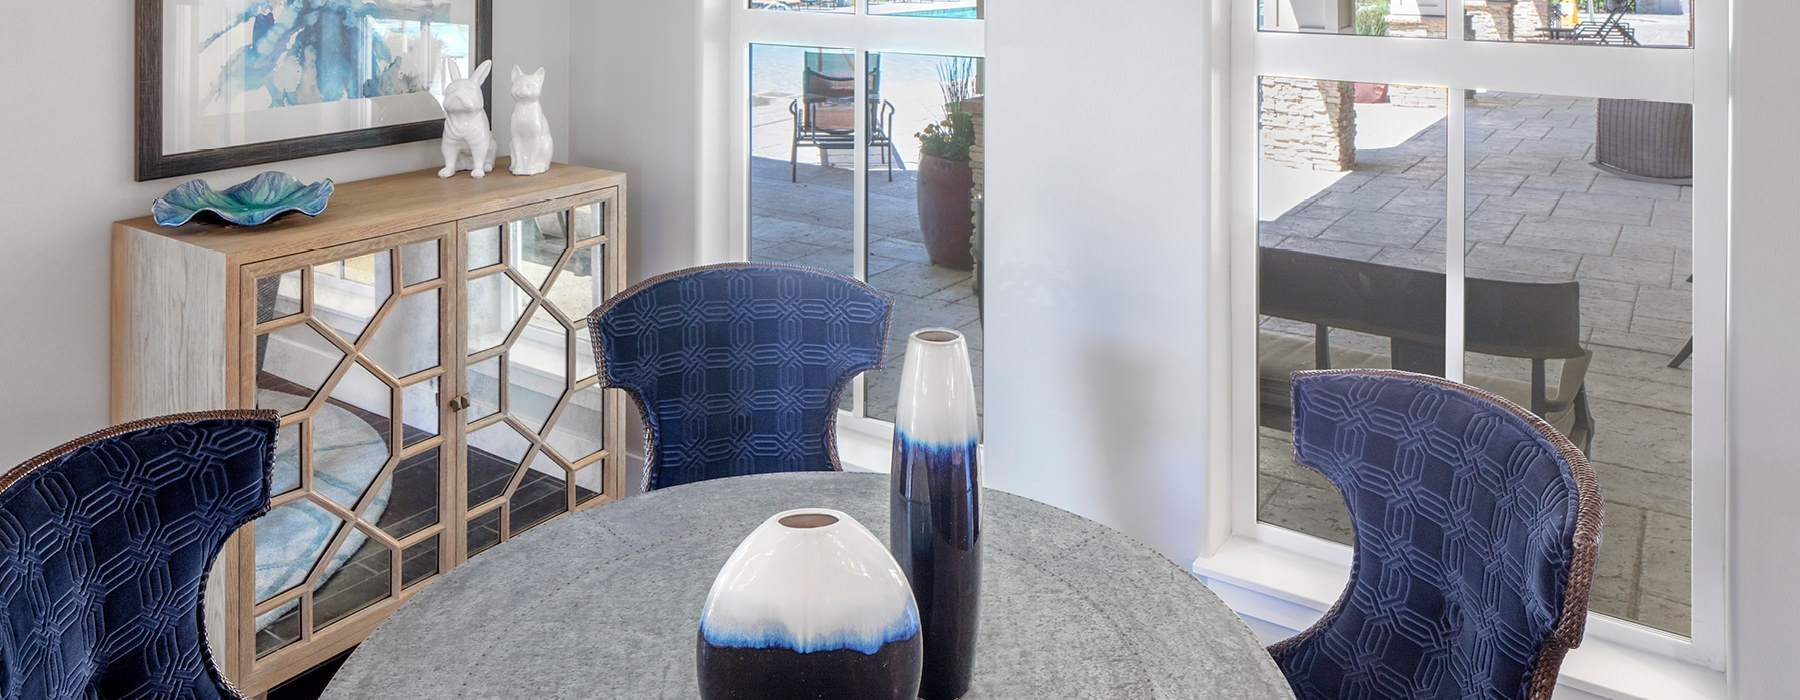 round table with chairs near large windows in resident lounge